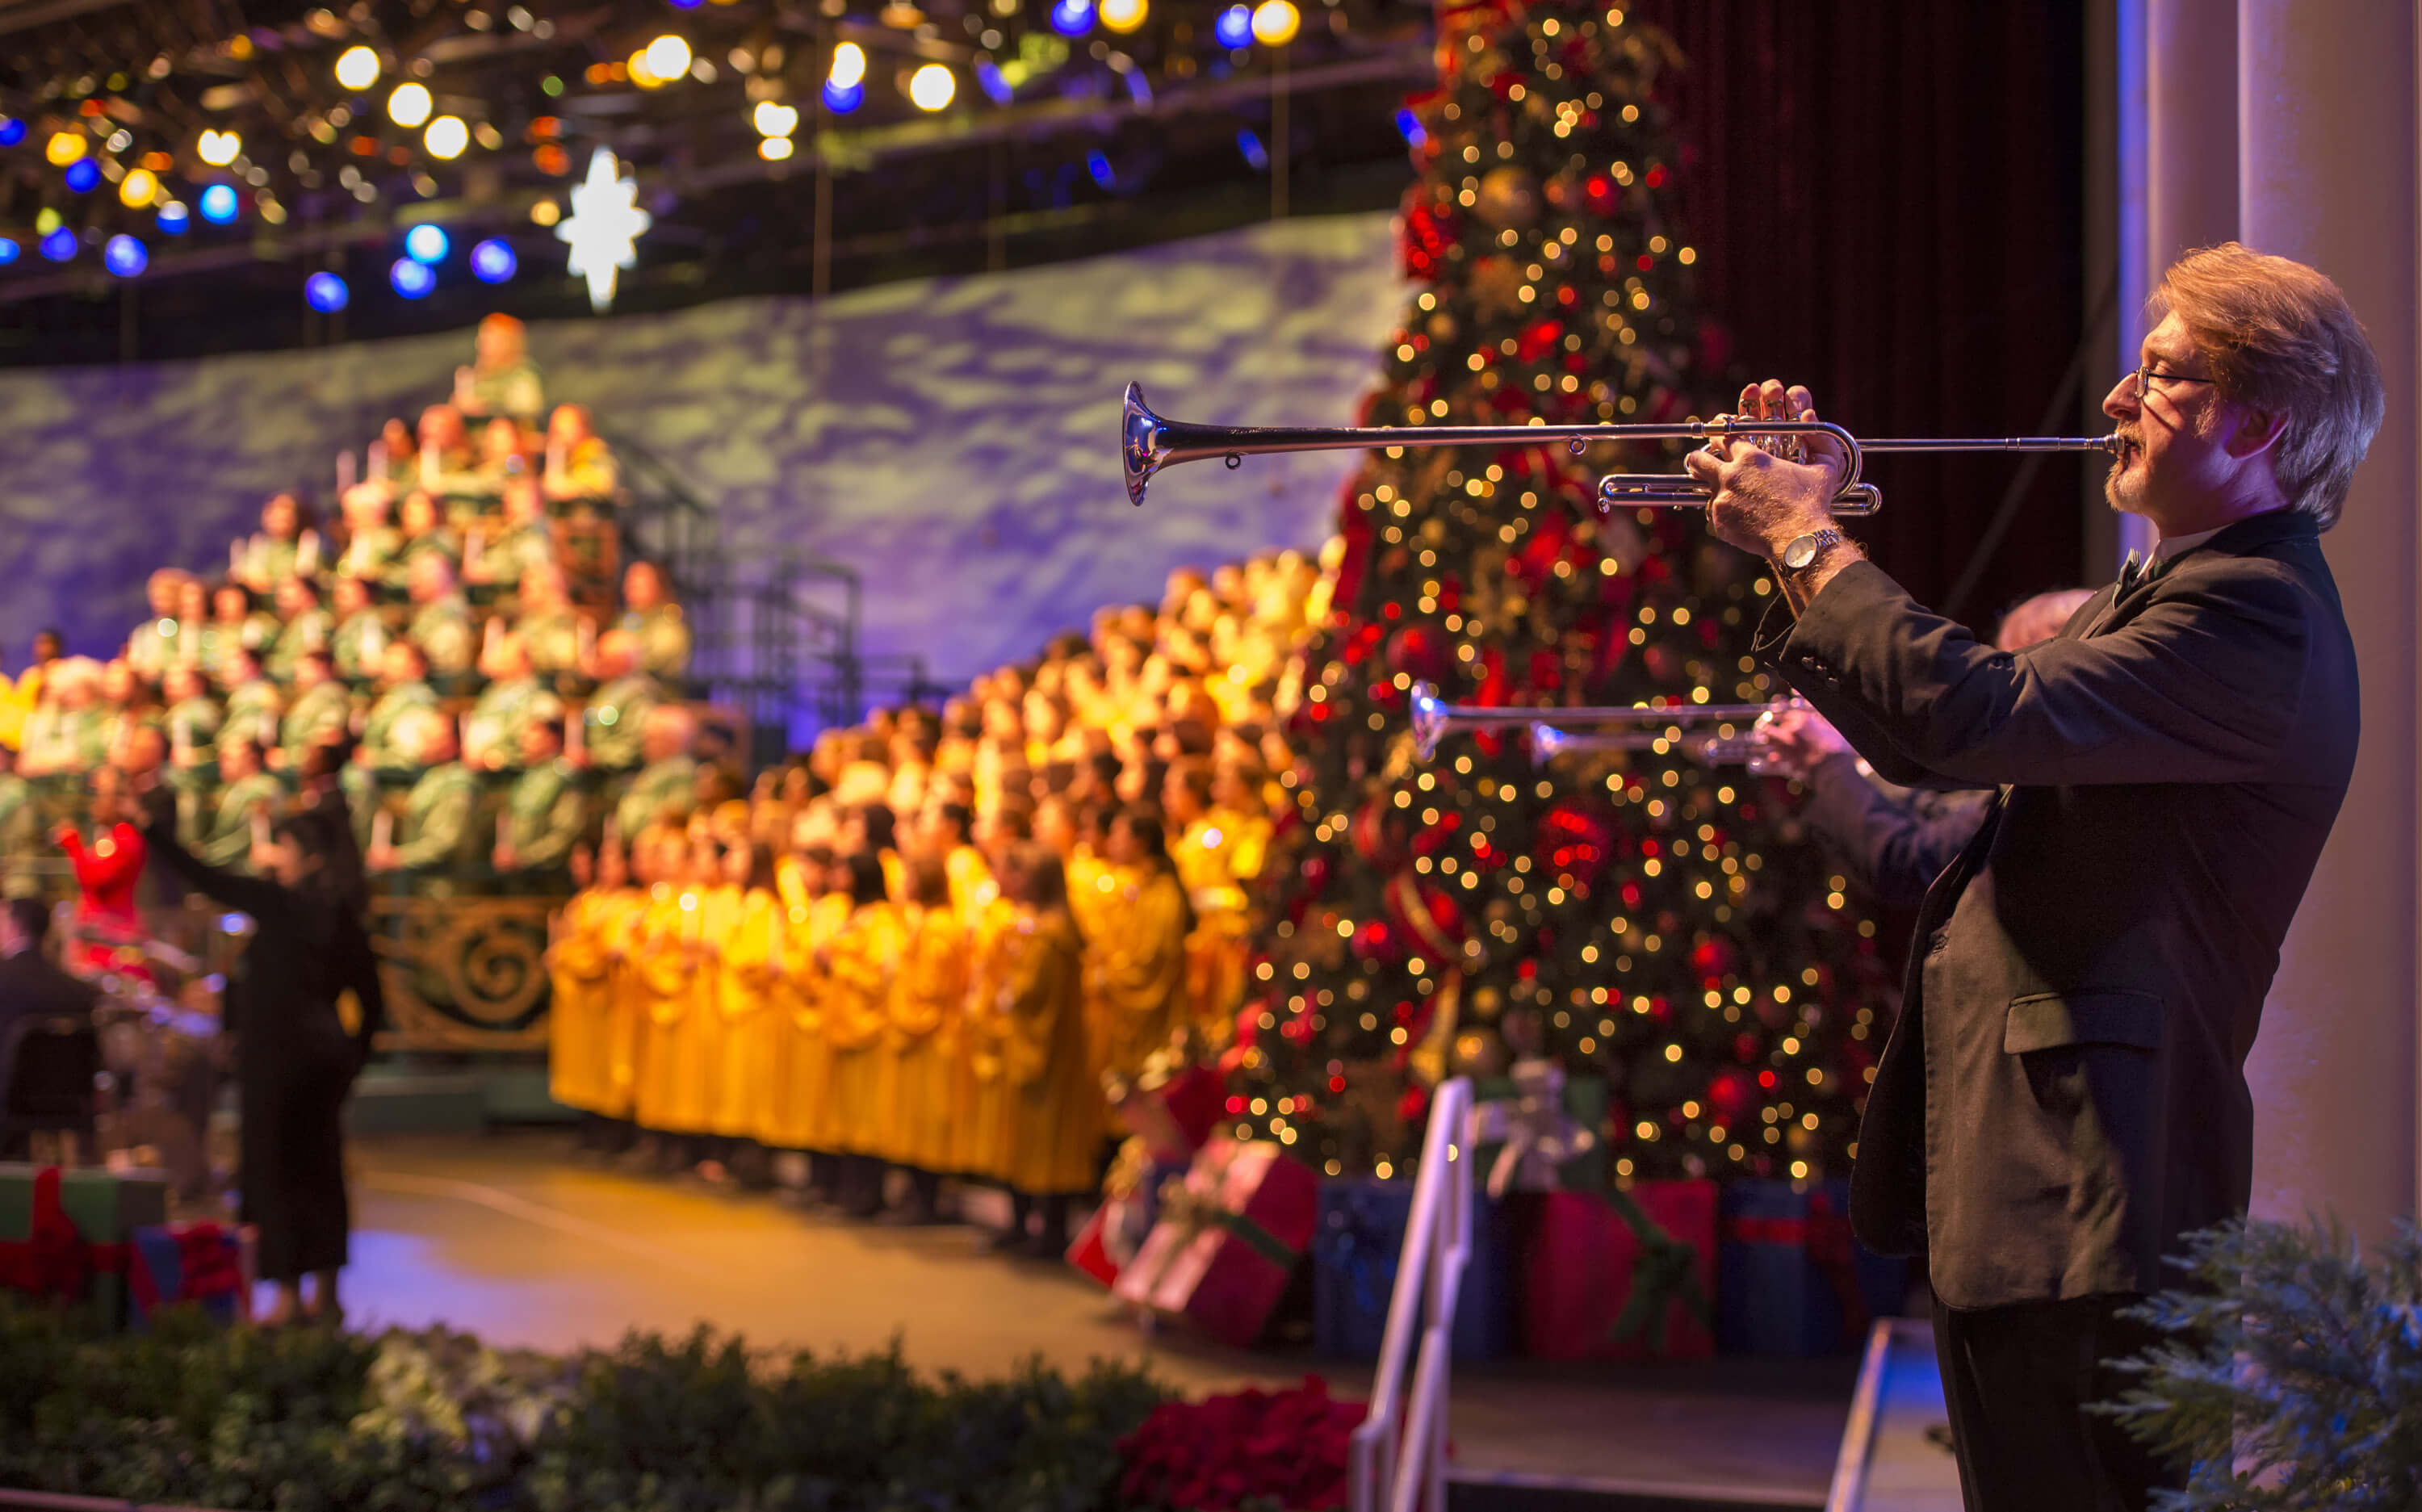 disney world holiday events 2018 epcot candlelight processional - Disney Beauty And The Beast Christmas Decorations